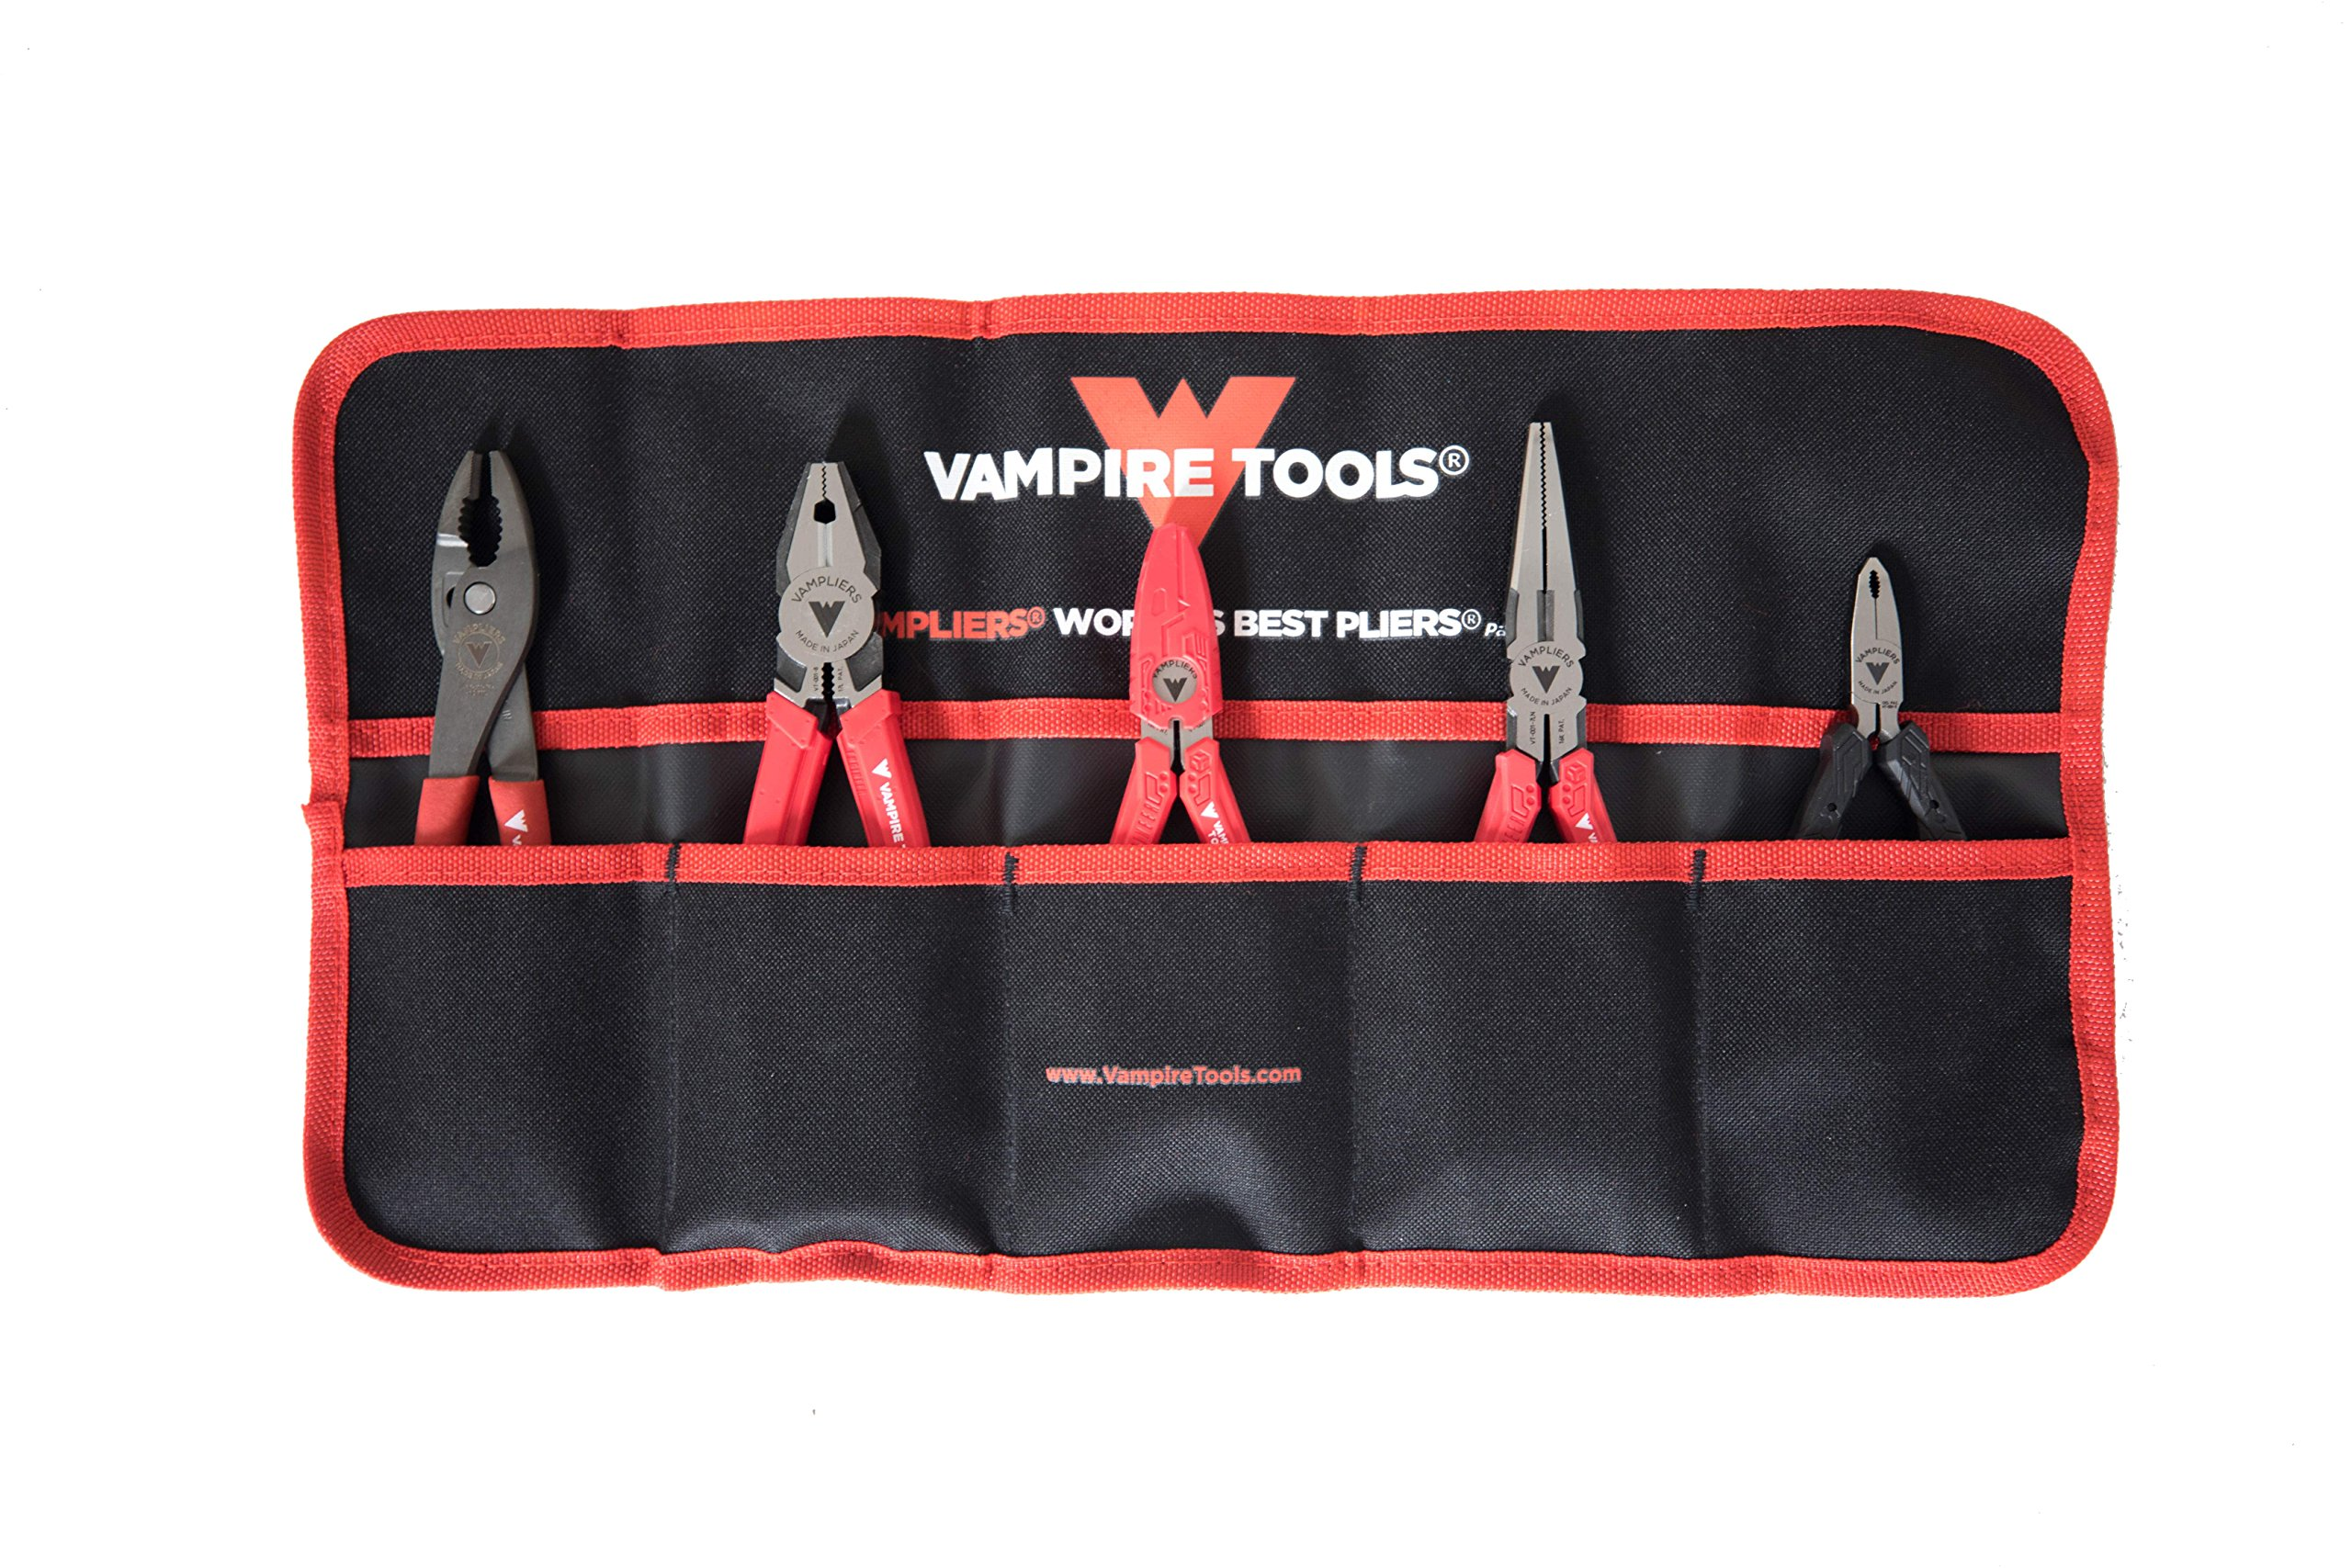 VAMPLIERS. World's Best Pliers! Black Friday Gifts 5-PC SET S5BP Specialty Screw Extractions Pliers. Extract Stripped Stuck Security, Corroded or Rusted Screws/Nuts/Bolts With Tool Pouch by Vampire Professional Tools International